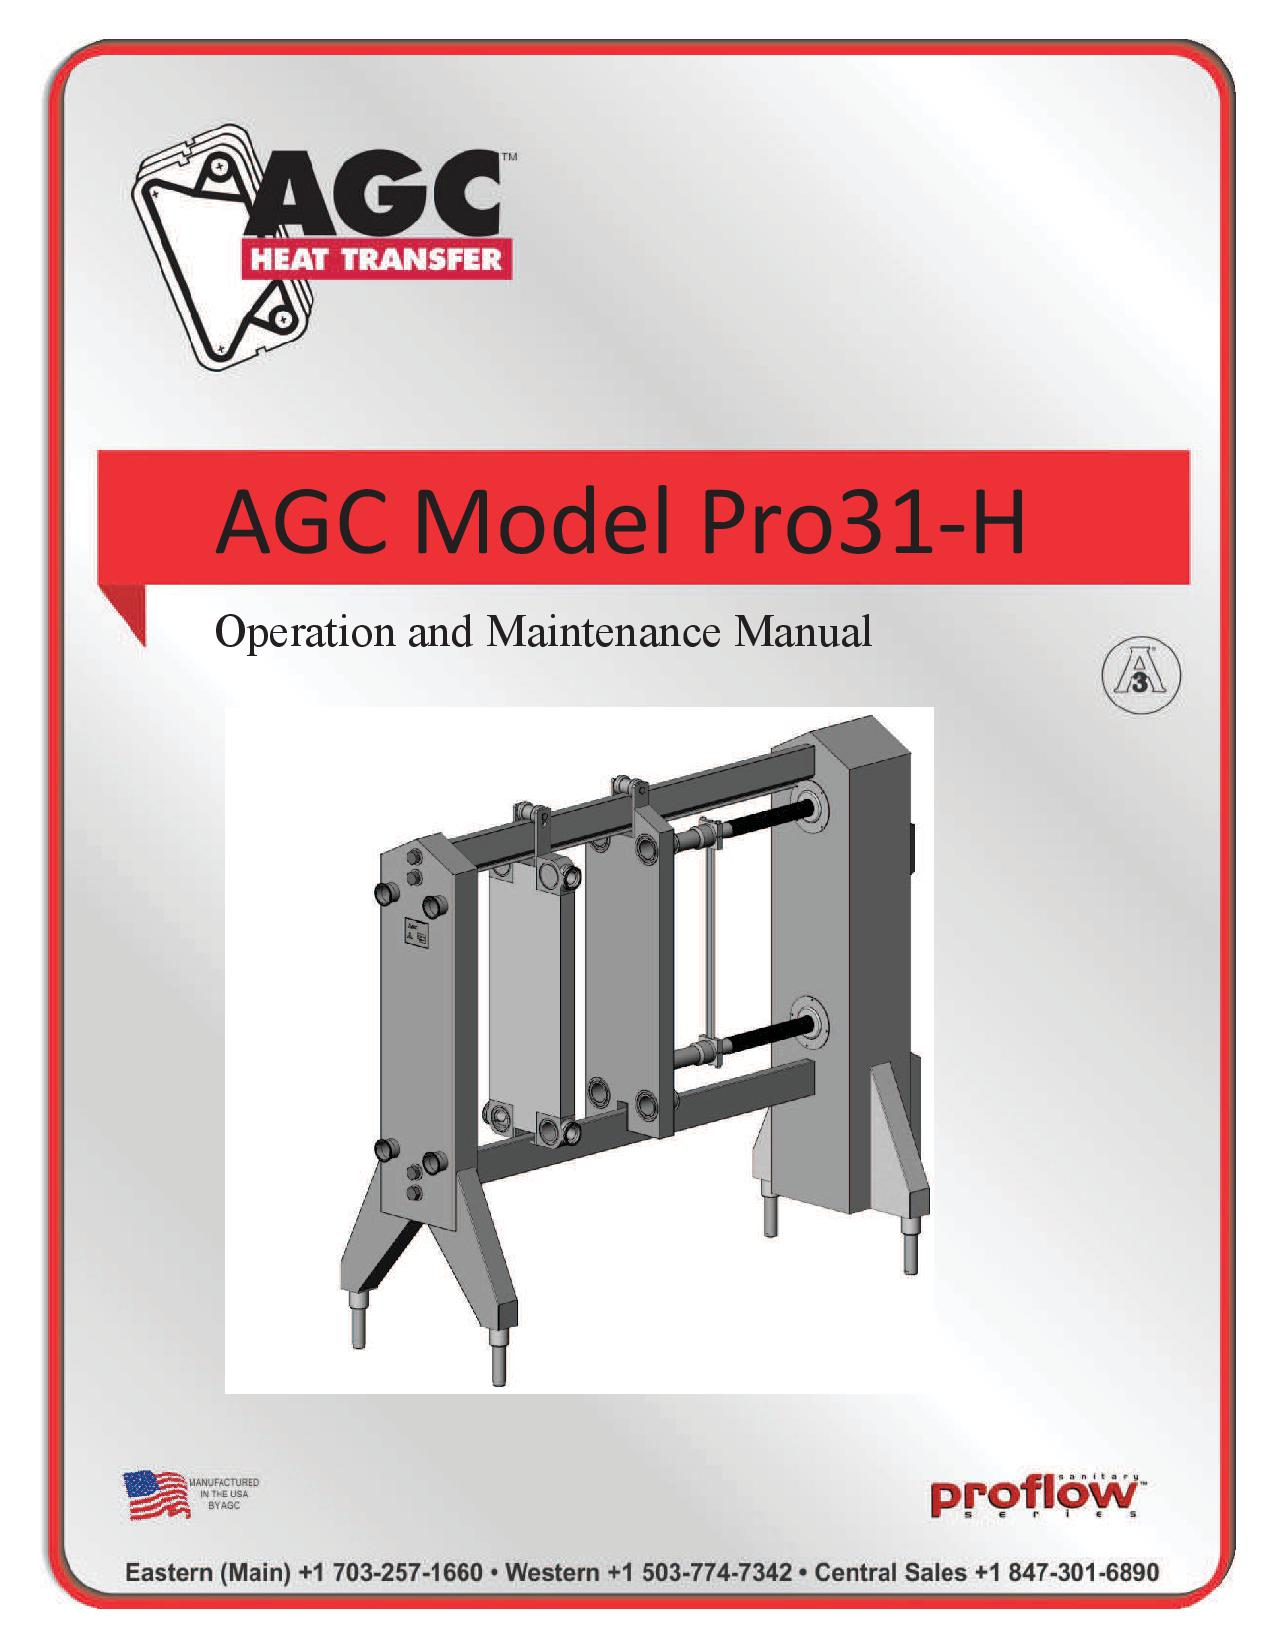 AGC Operating Manual Pro31-H